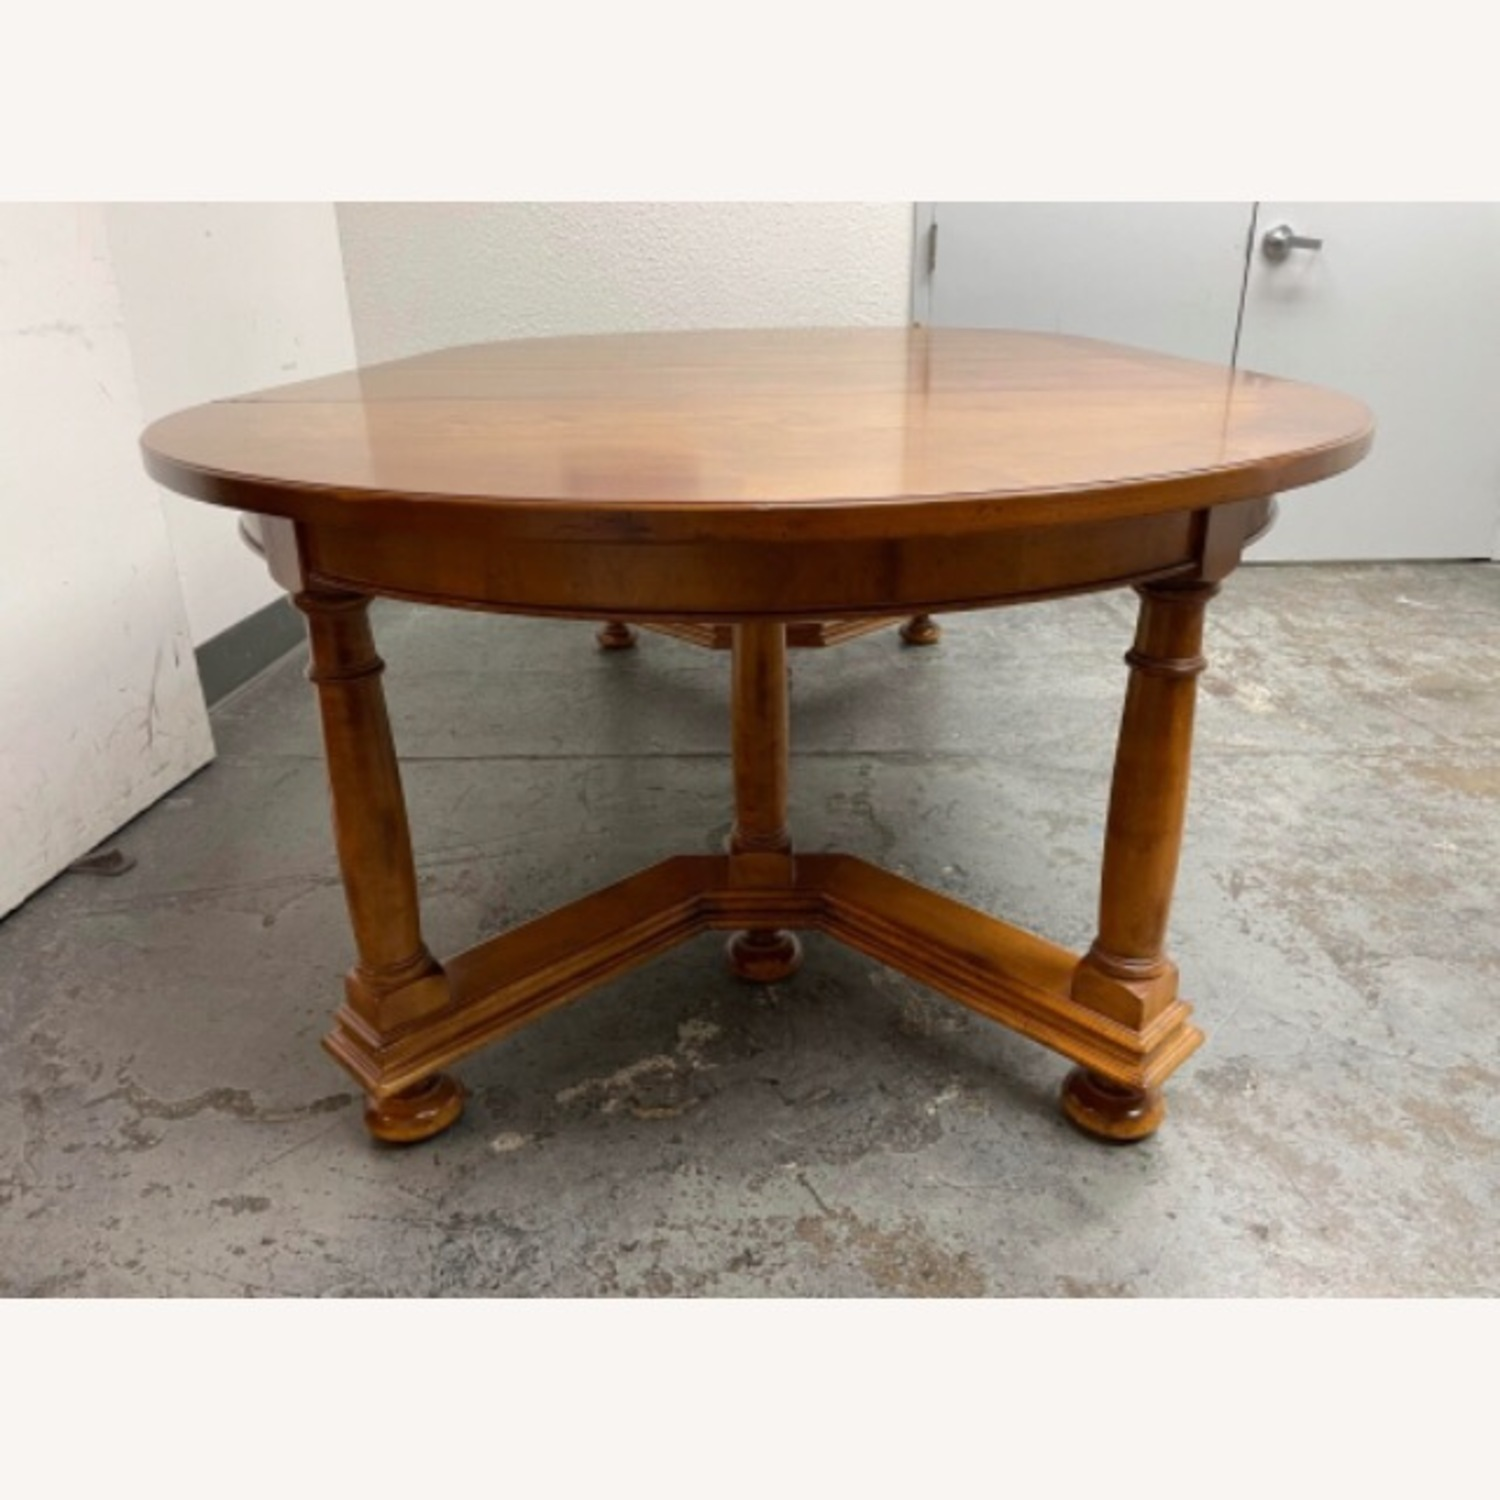 Milling Road Hildebrand Dining Table - image-8